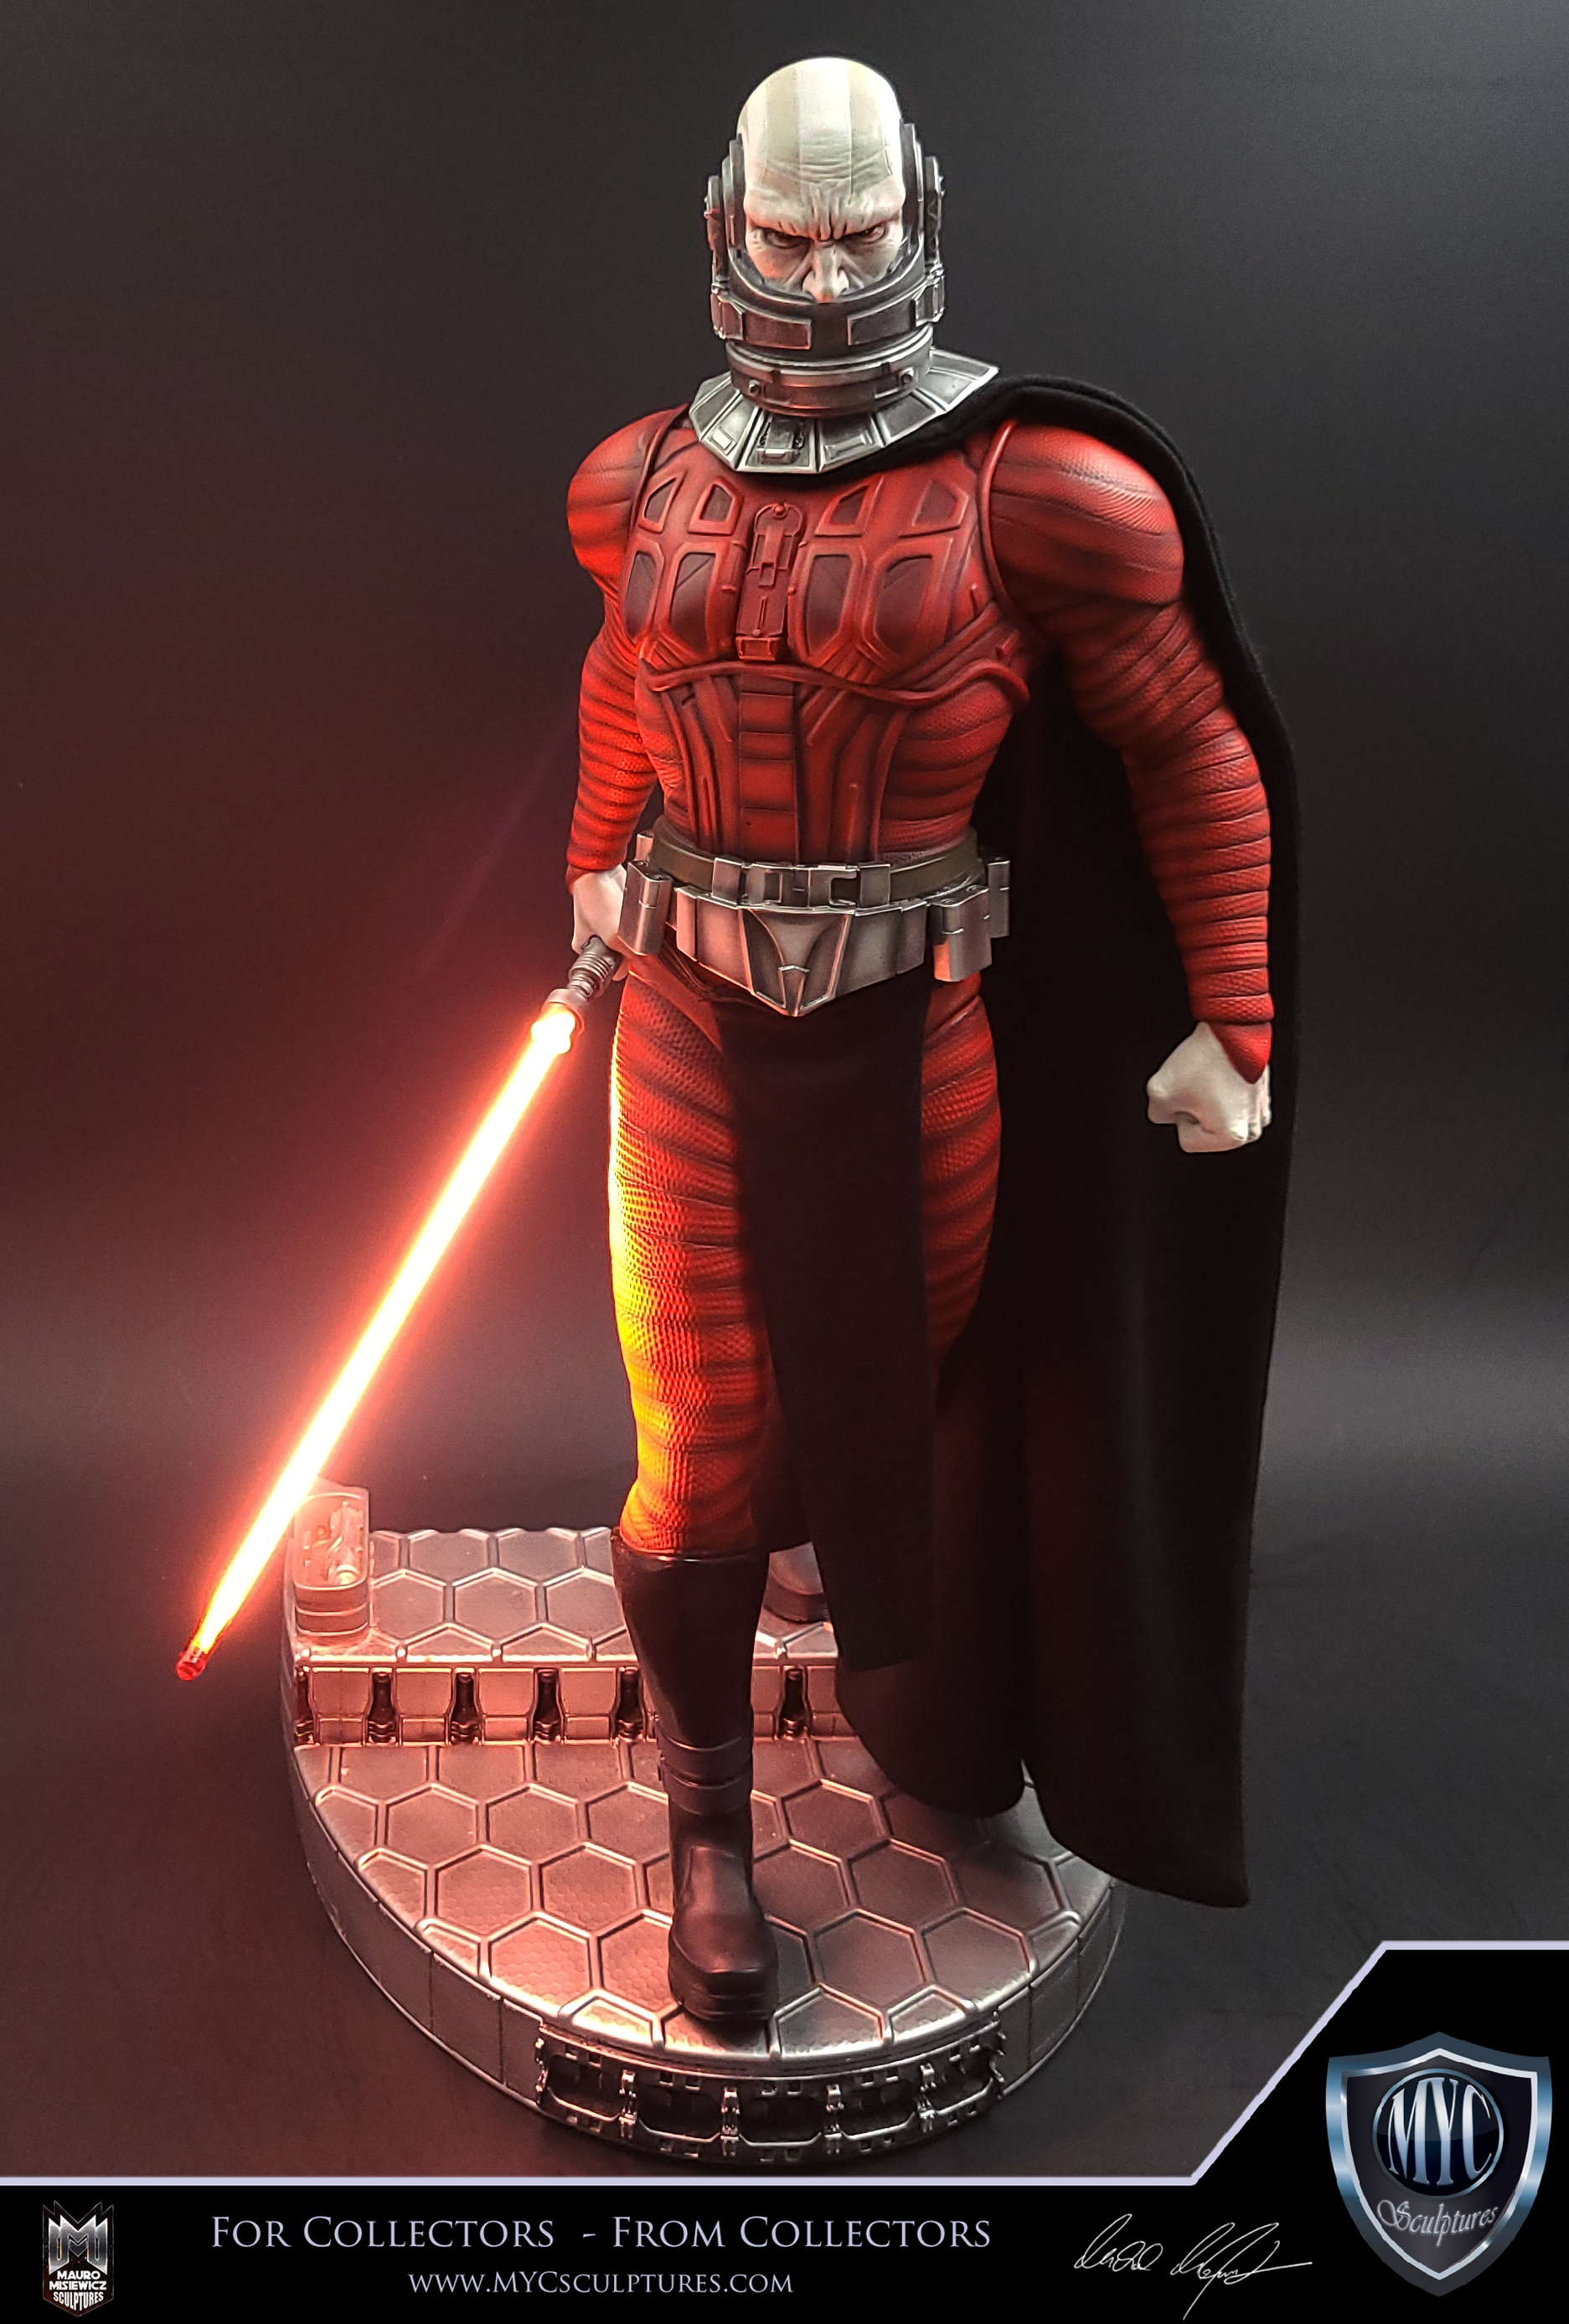 Darth_Malak_MYC_Sculptures_Statue_02